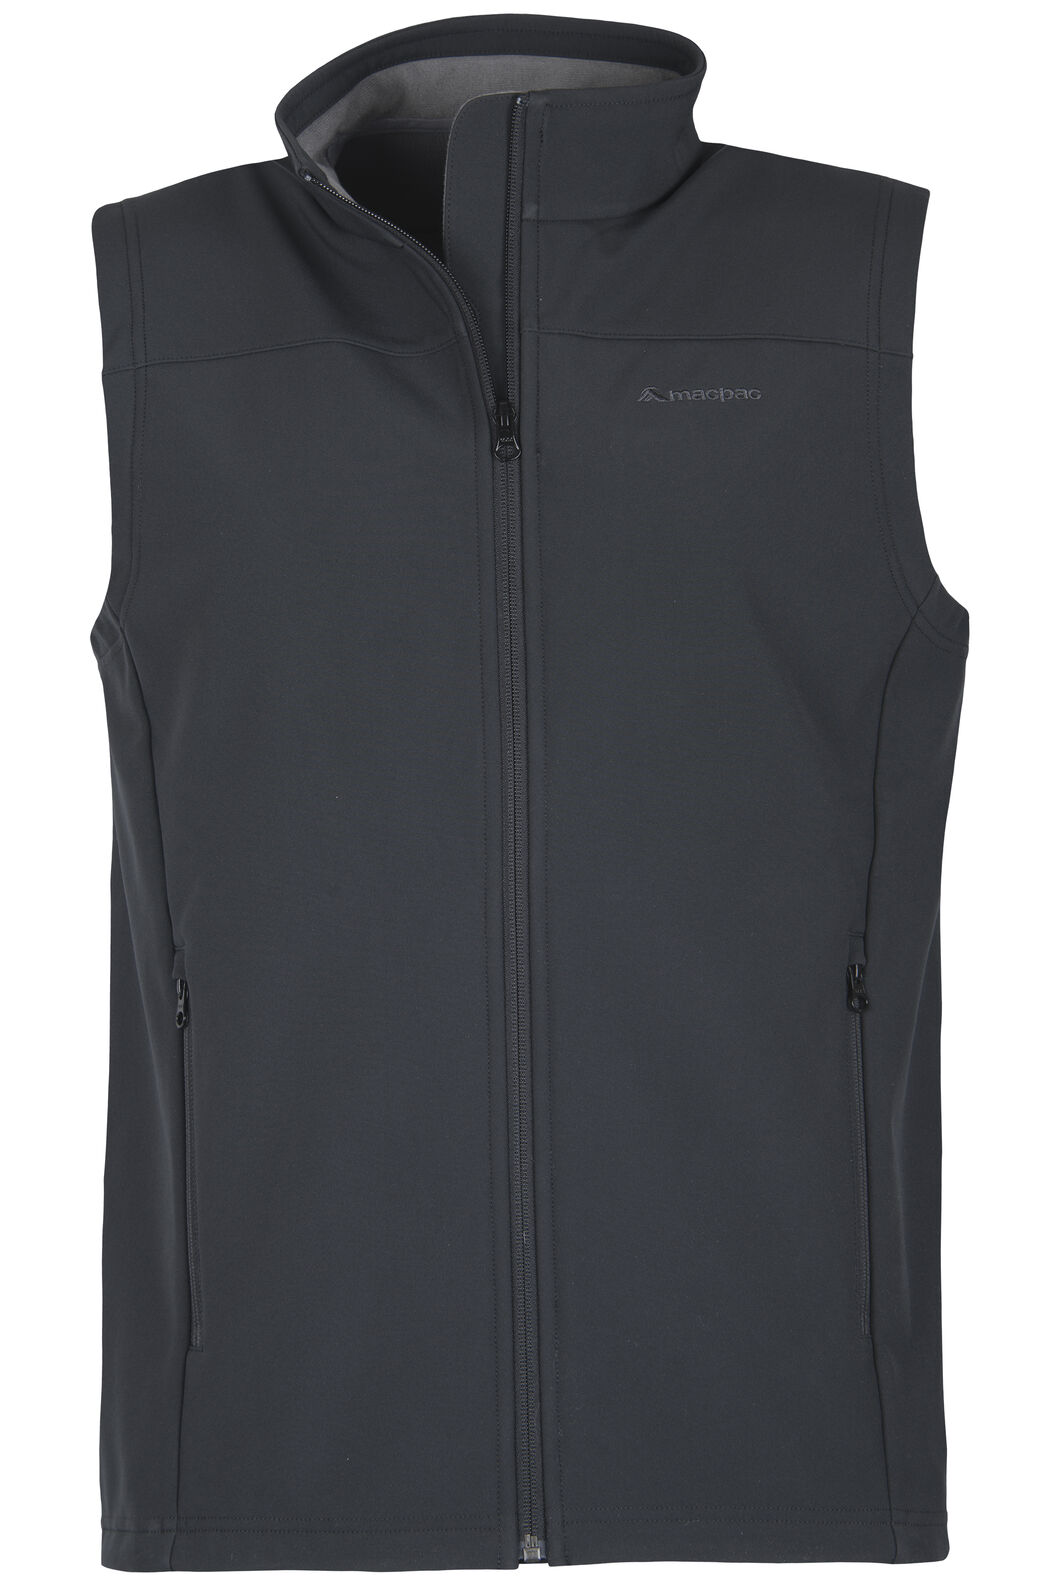 Macpac Sabre Softshell Vest - Men's, Black, hi-res